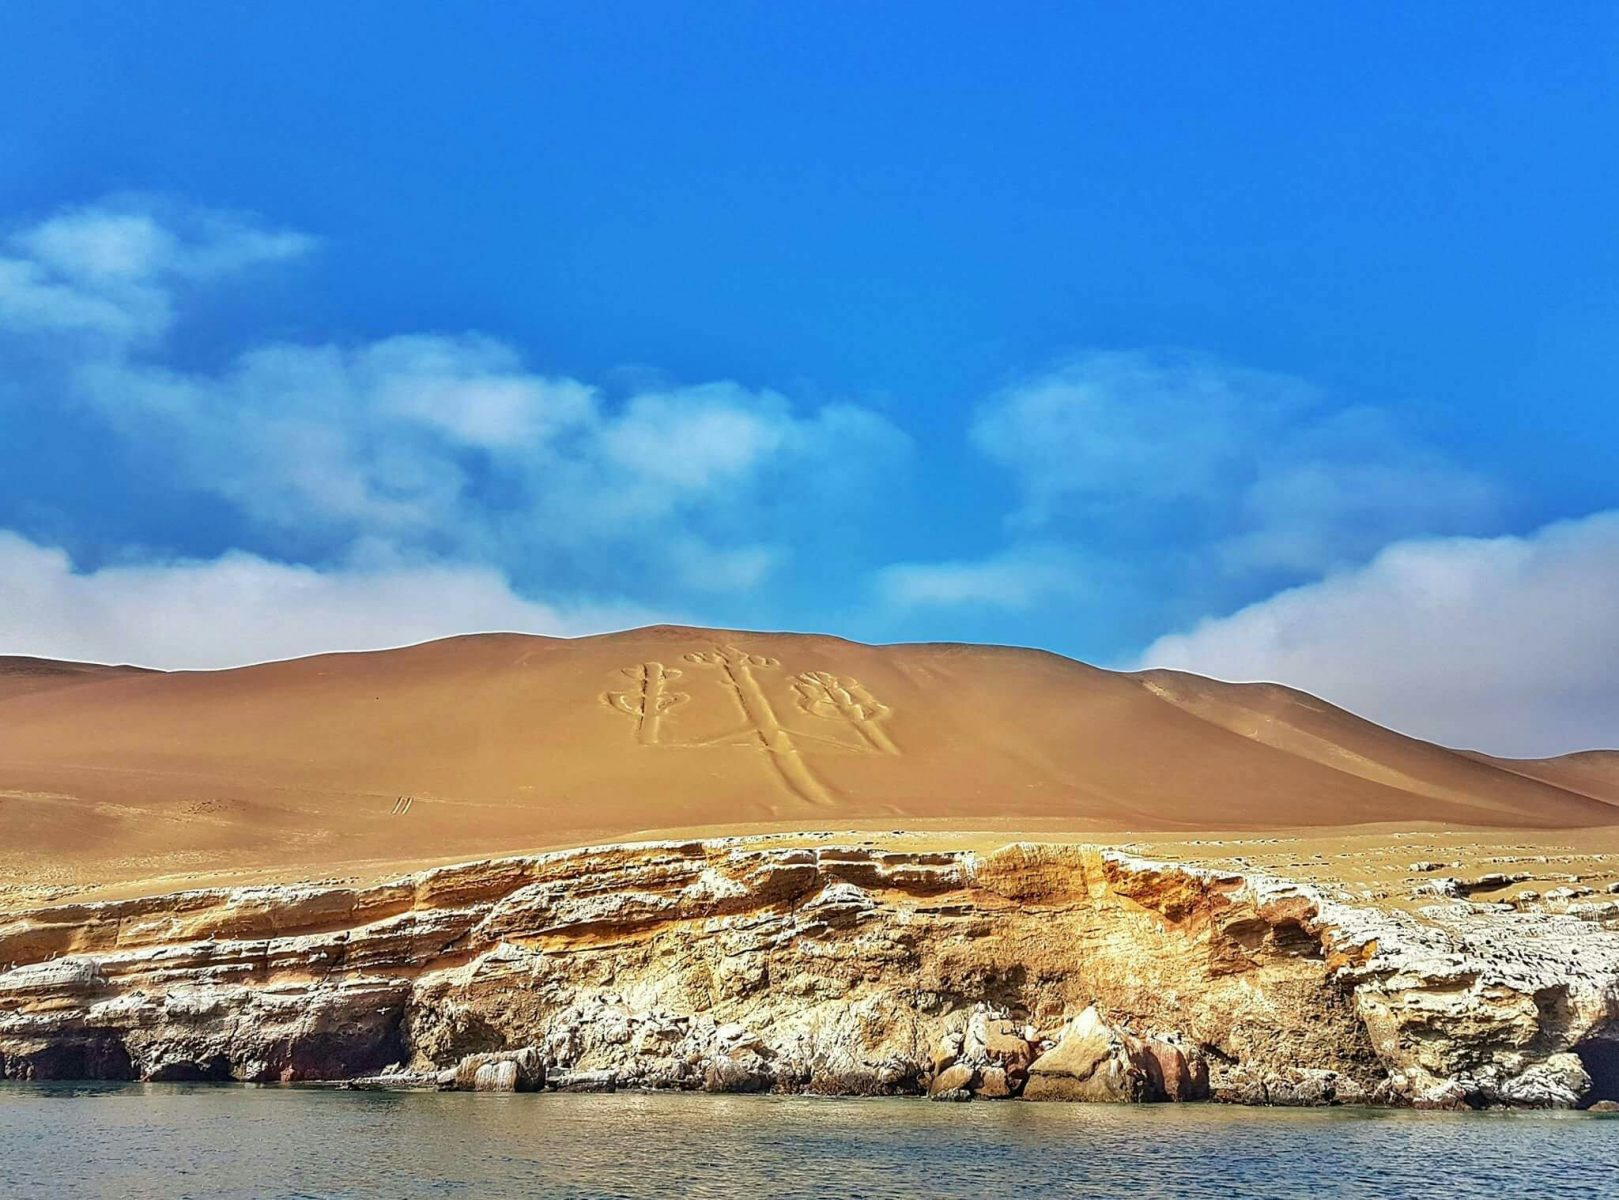 """<img src=""""images/"""" width=""""800"""" height=""""600"""" alt=""""ica - received 10154870729455636 423674049 - Peru: Sand and Sails, Ica, Huacachina and Paracas"""">"""